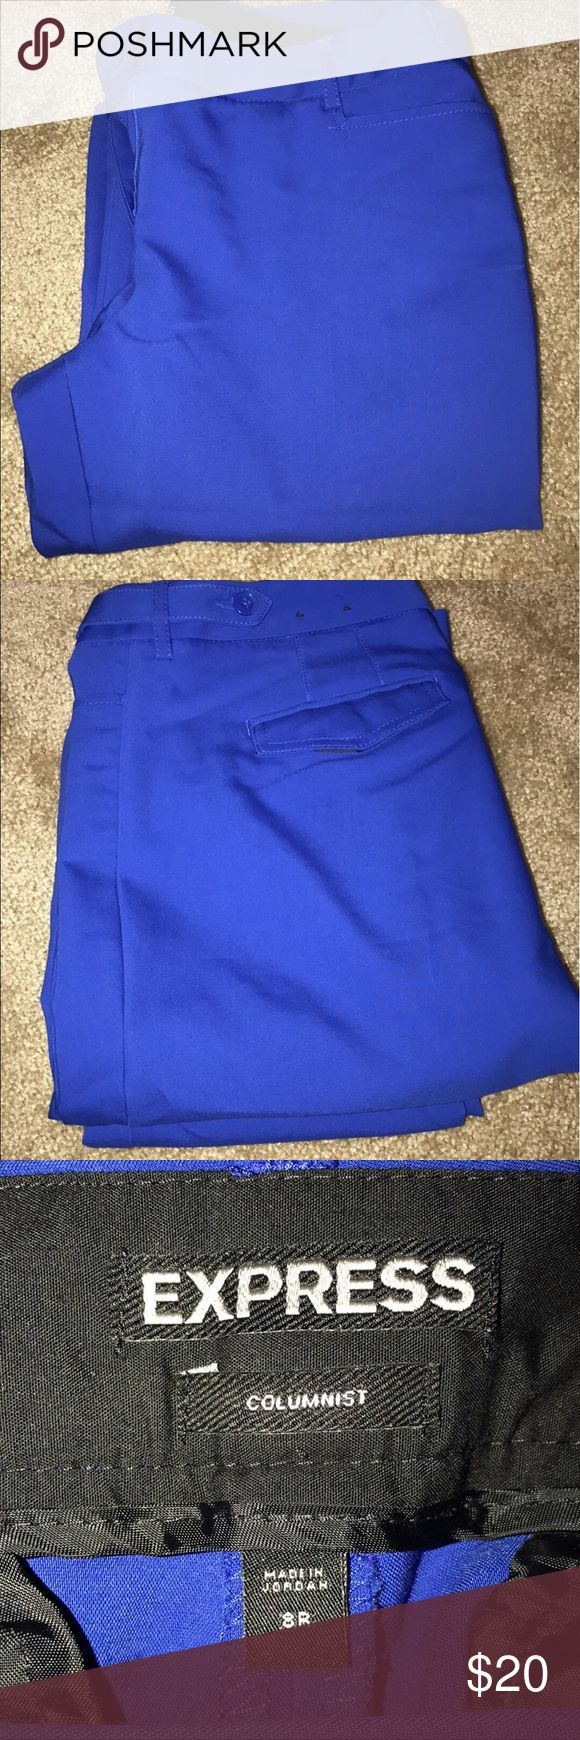 Express cobalt blue slacks Size 8R bootcut slacks. Great fit. Curve hugging slacks. Very comfortable. Express Pants Trousers